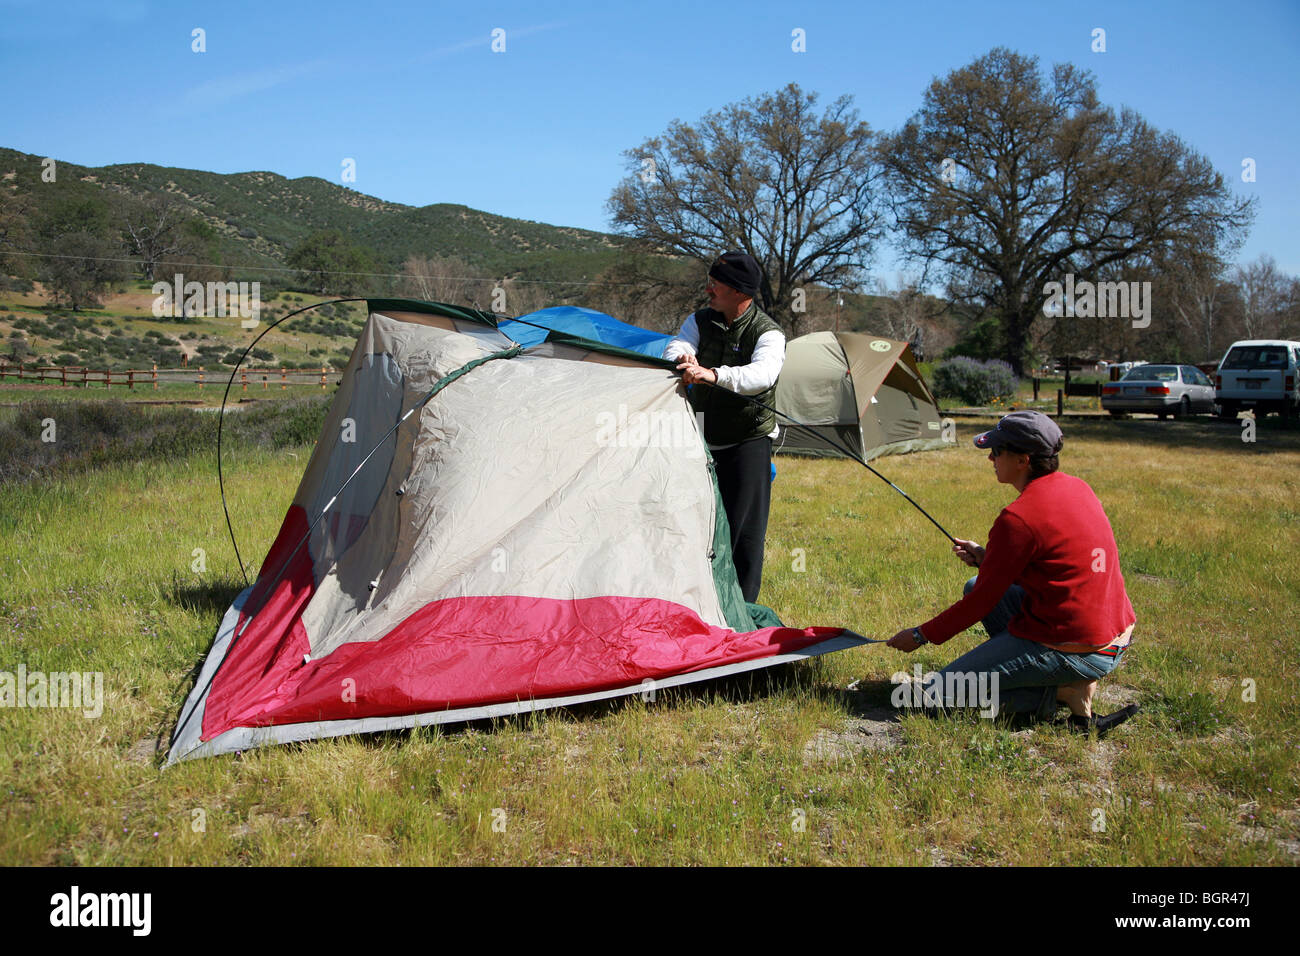 a man and woman camping and building a tent outdoors stock photo